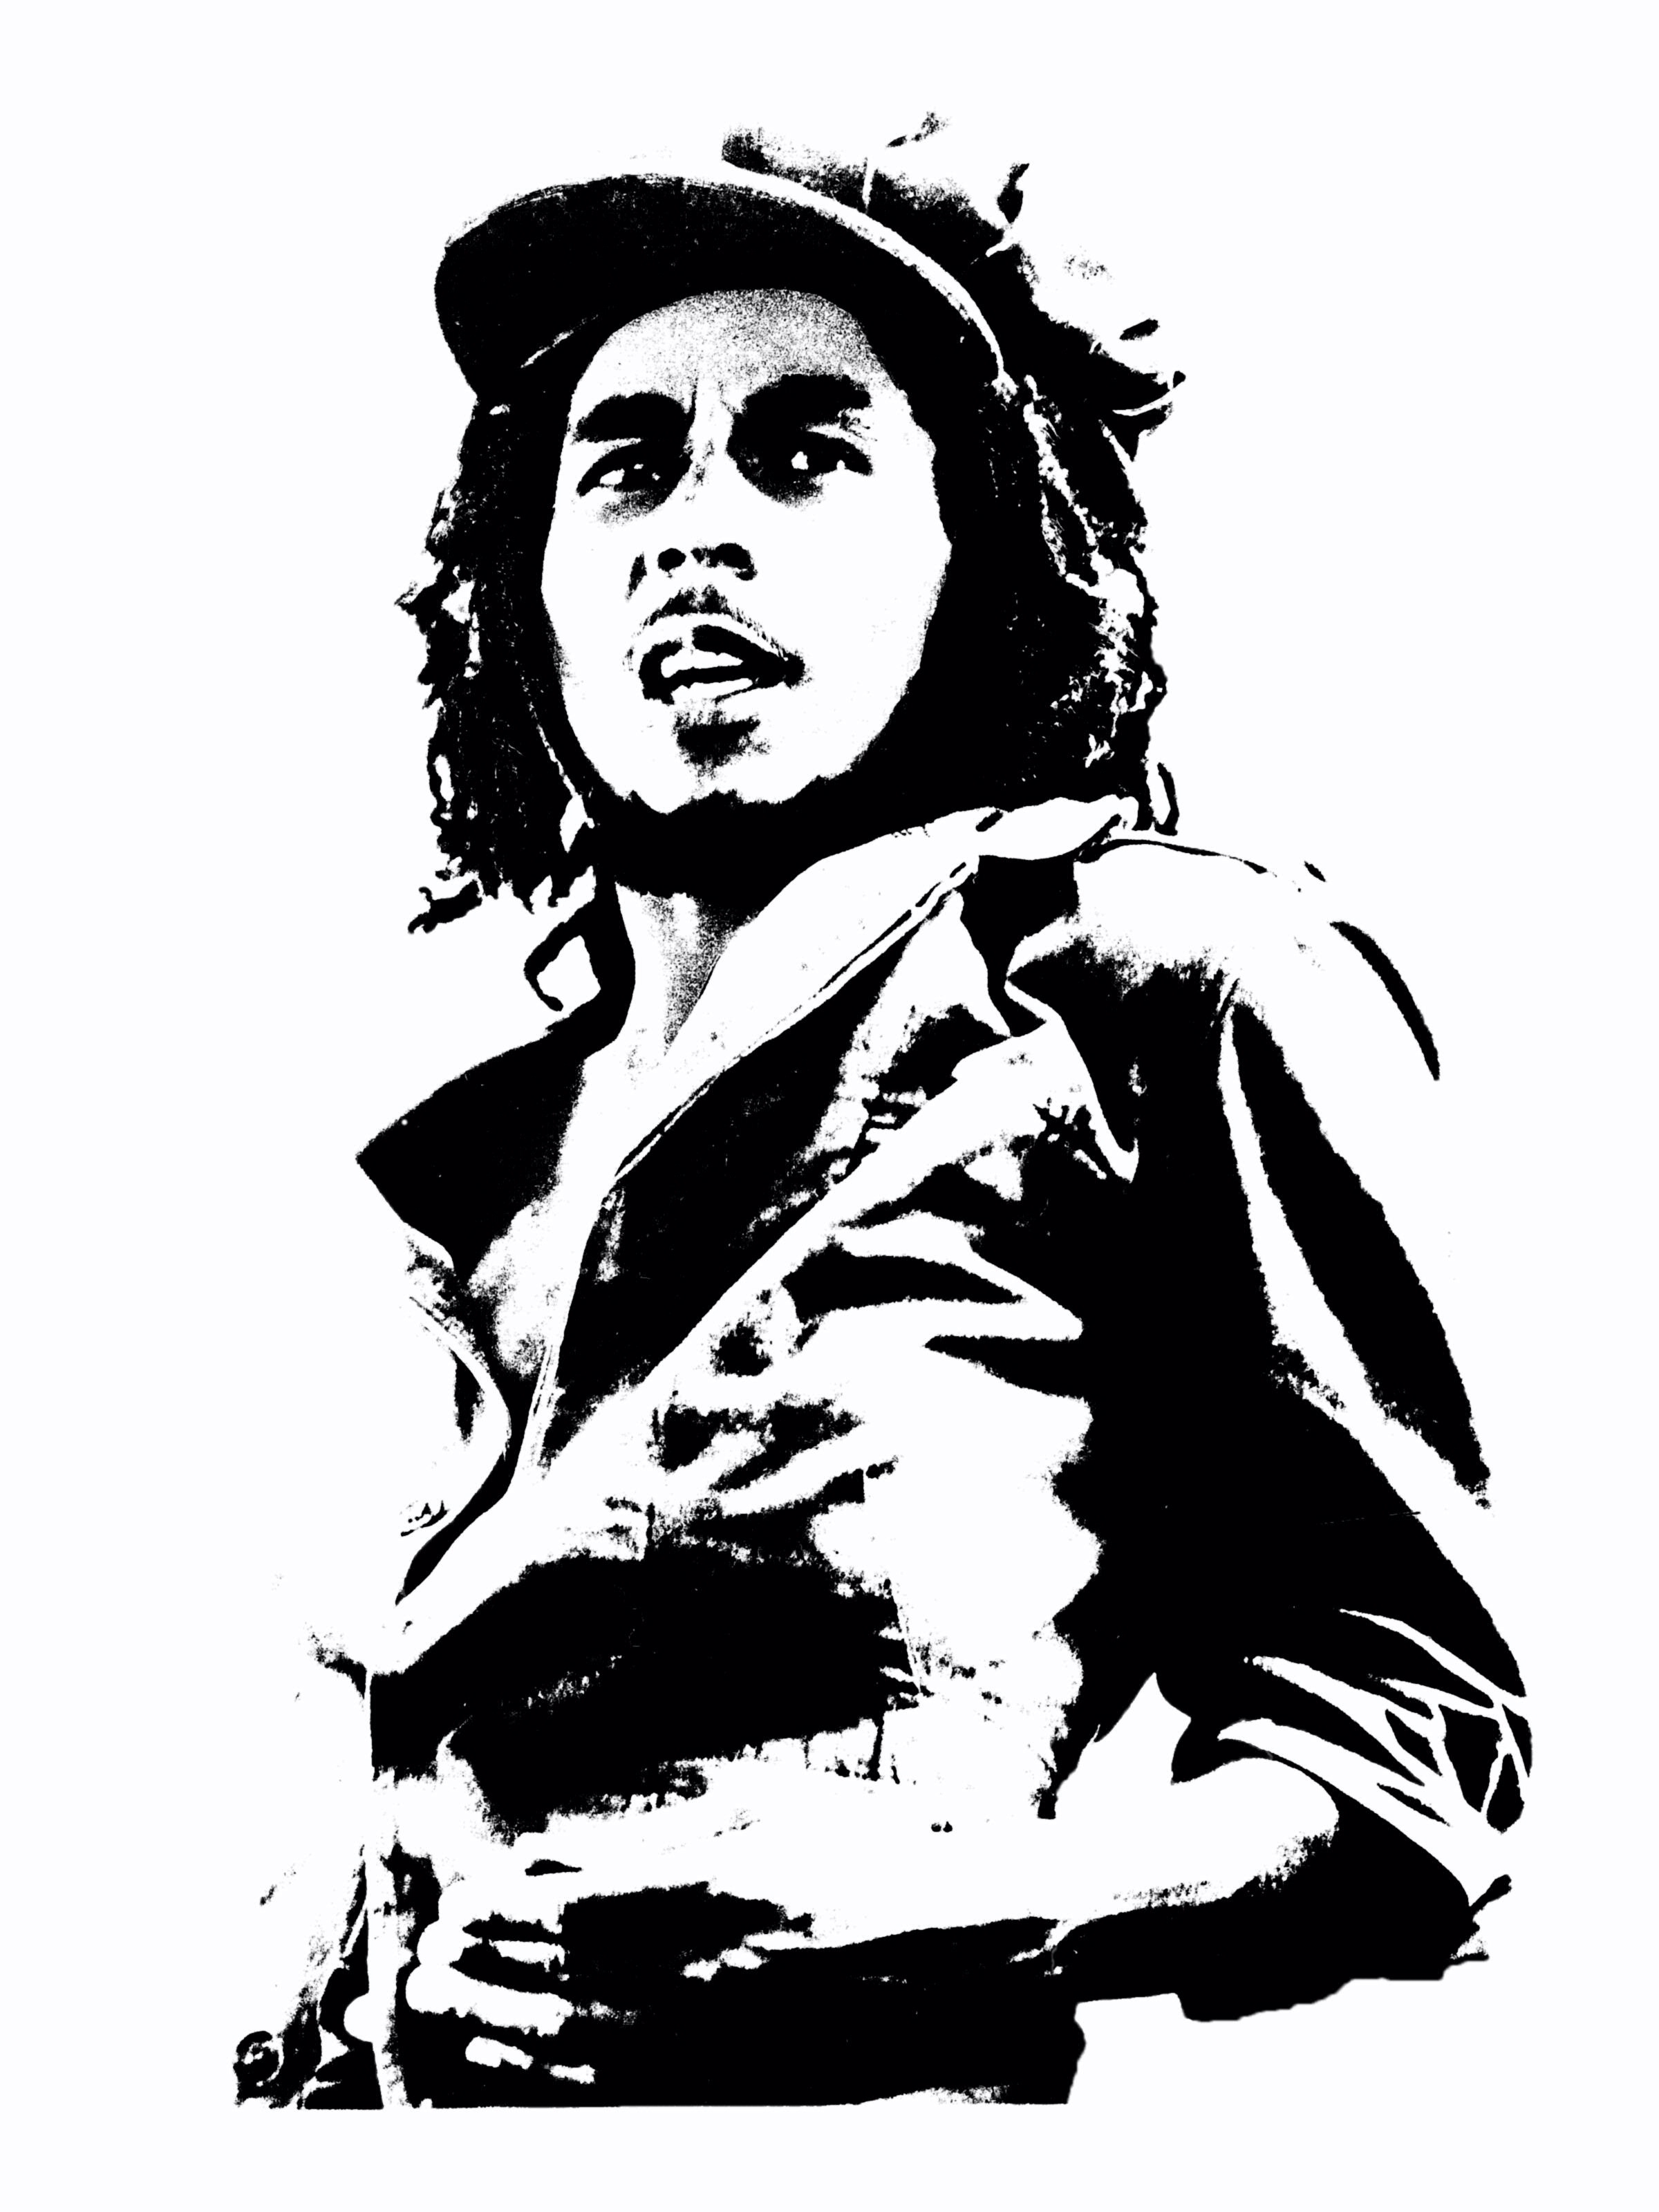 Create Wall Graffiti Bob Marley.